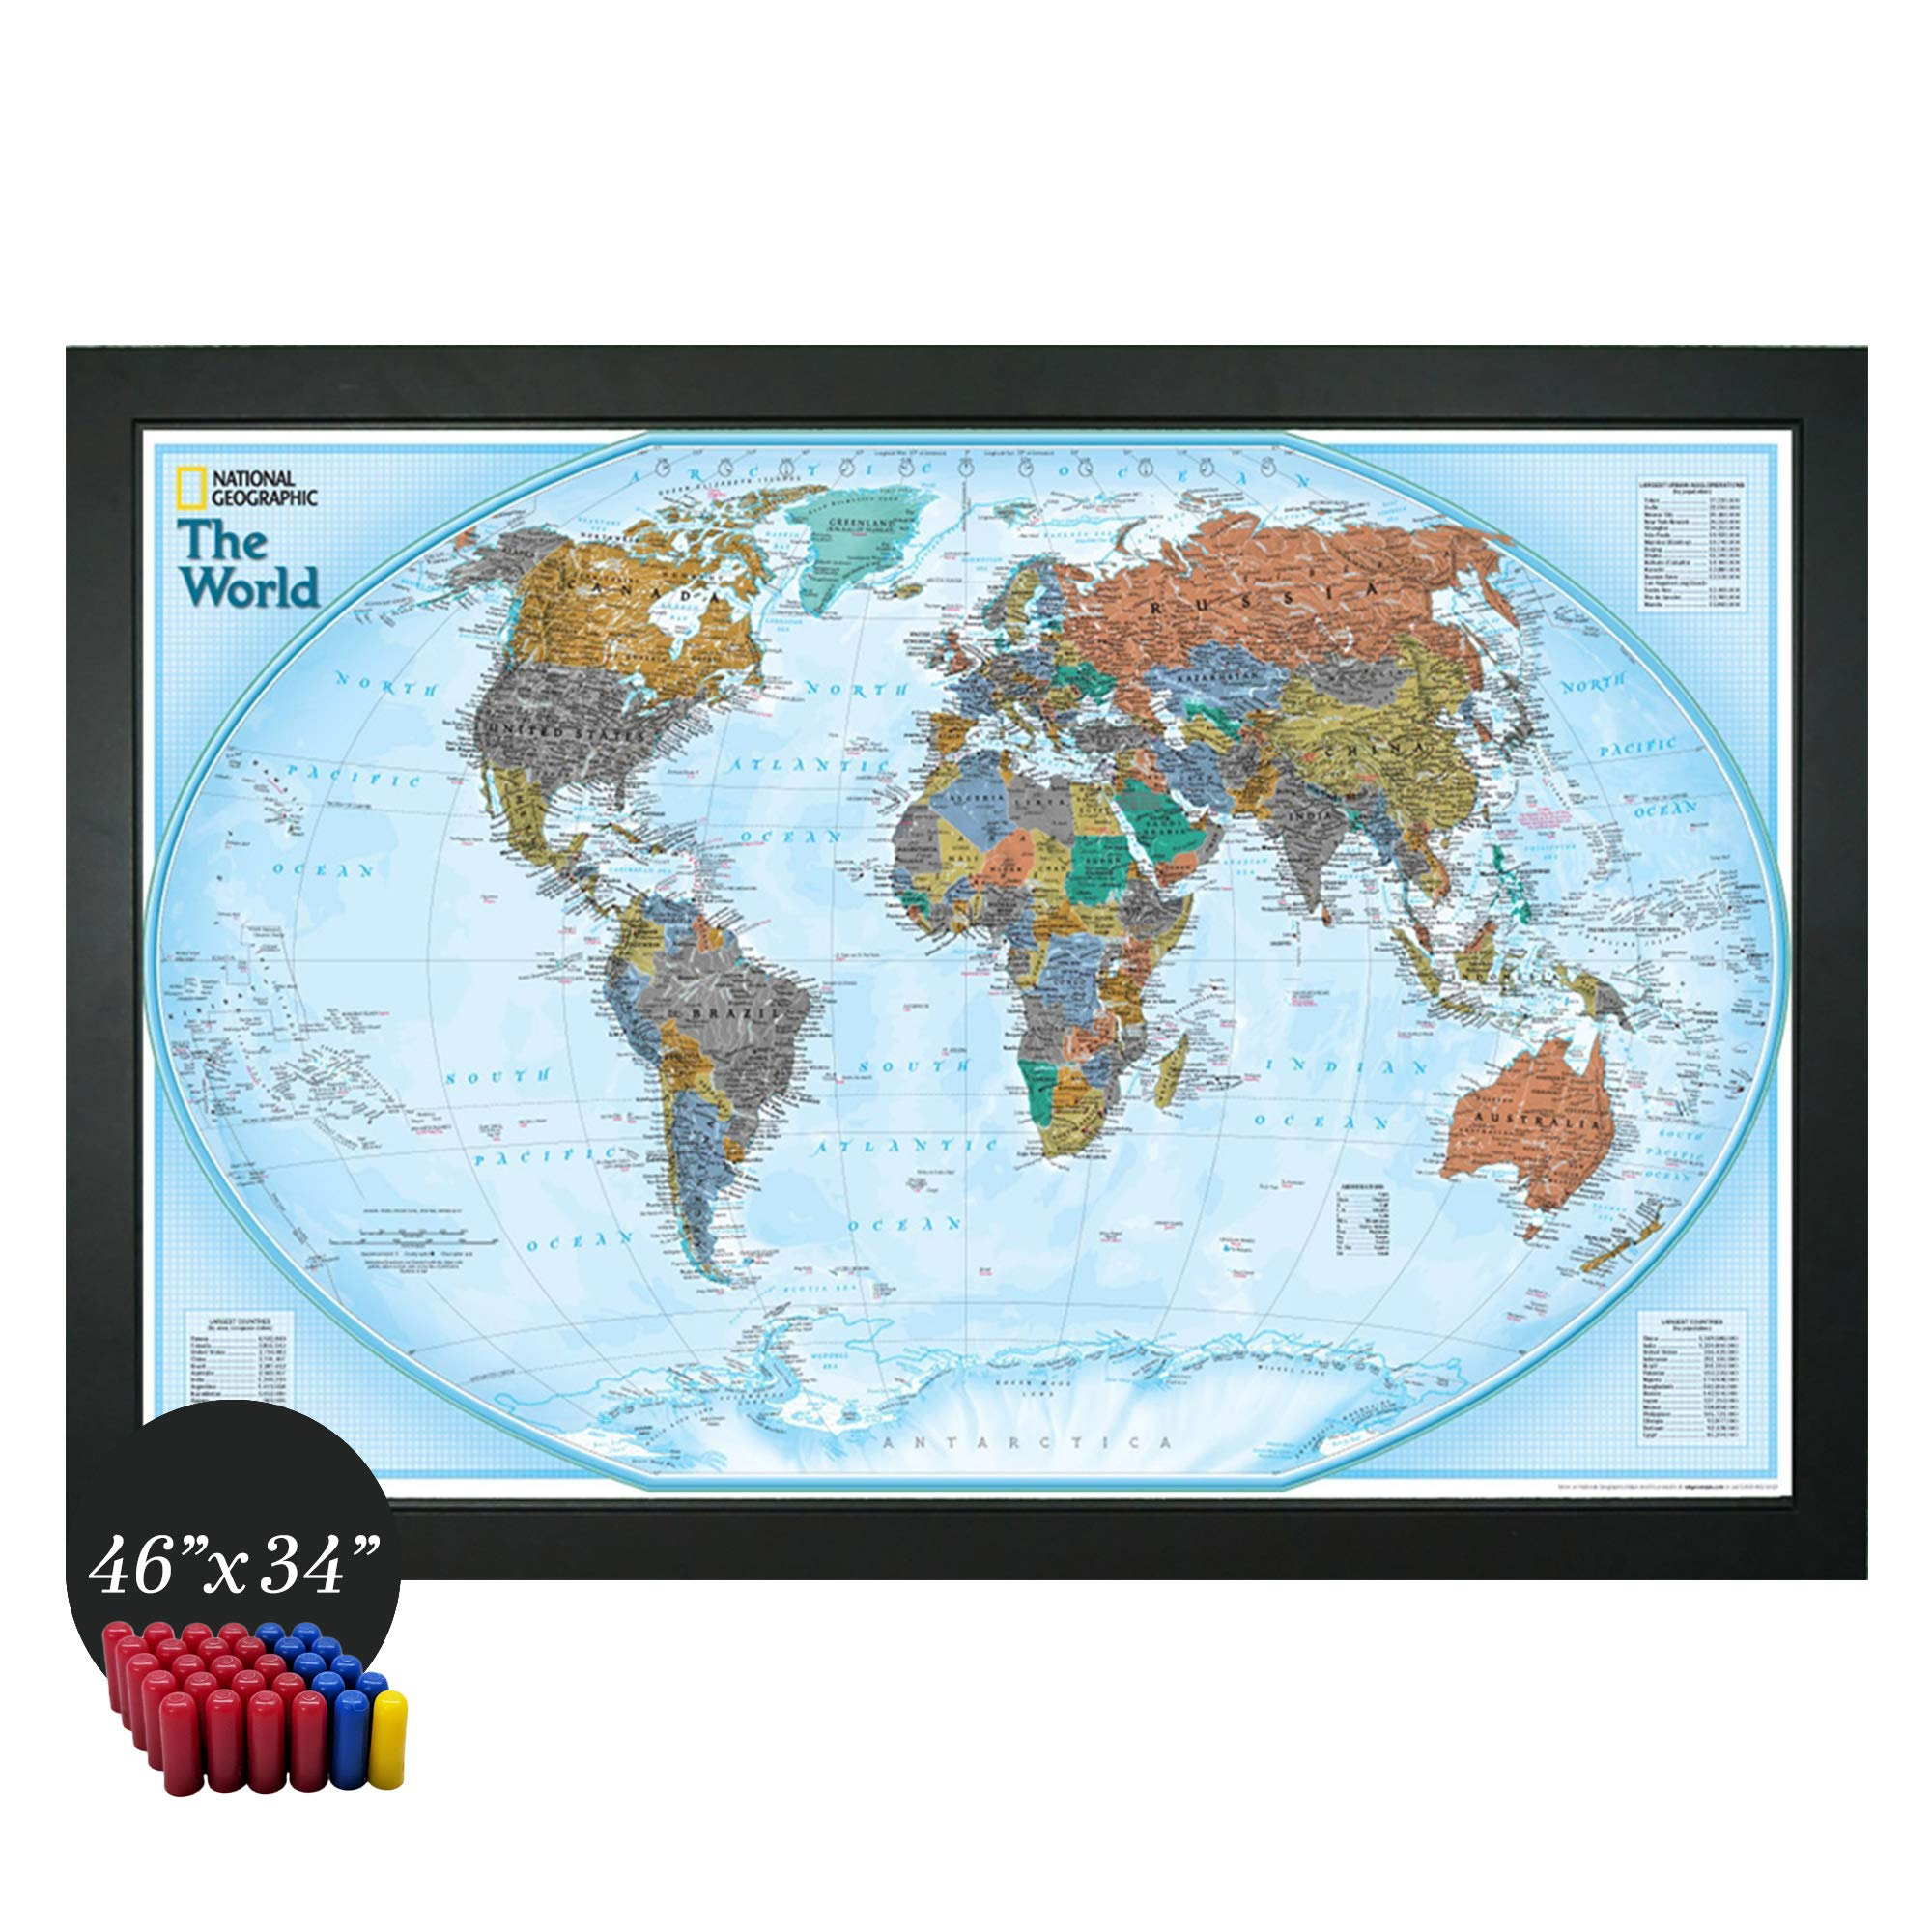 Home Magnetics National Geographic Interactive World Map Art | Framed Magnetic Geographic Map | 30 Marker Pins Included (46x34) by Homemagnetics